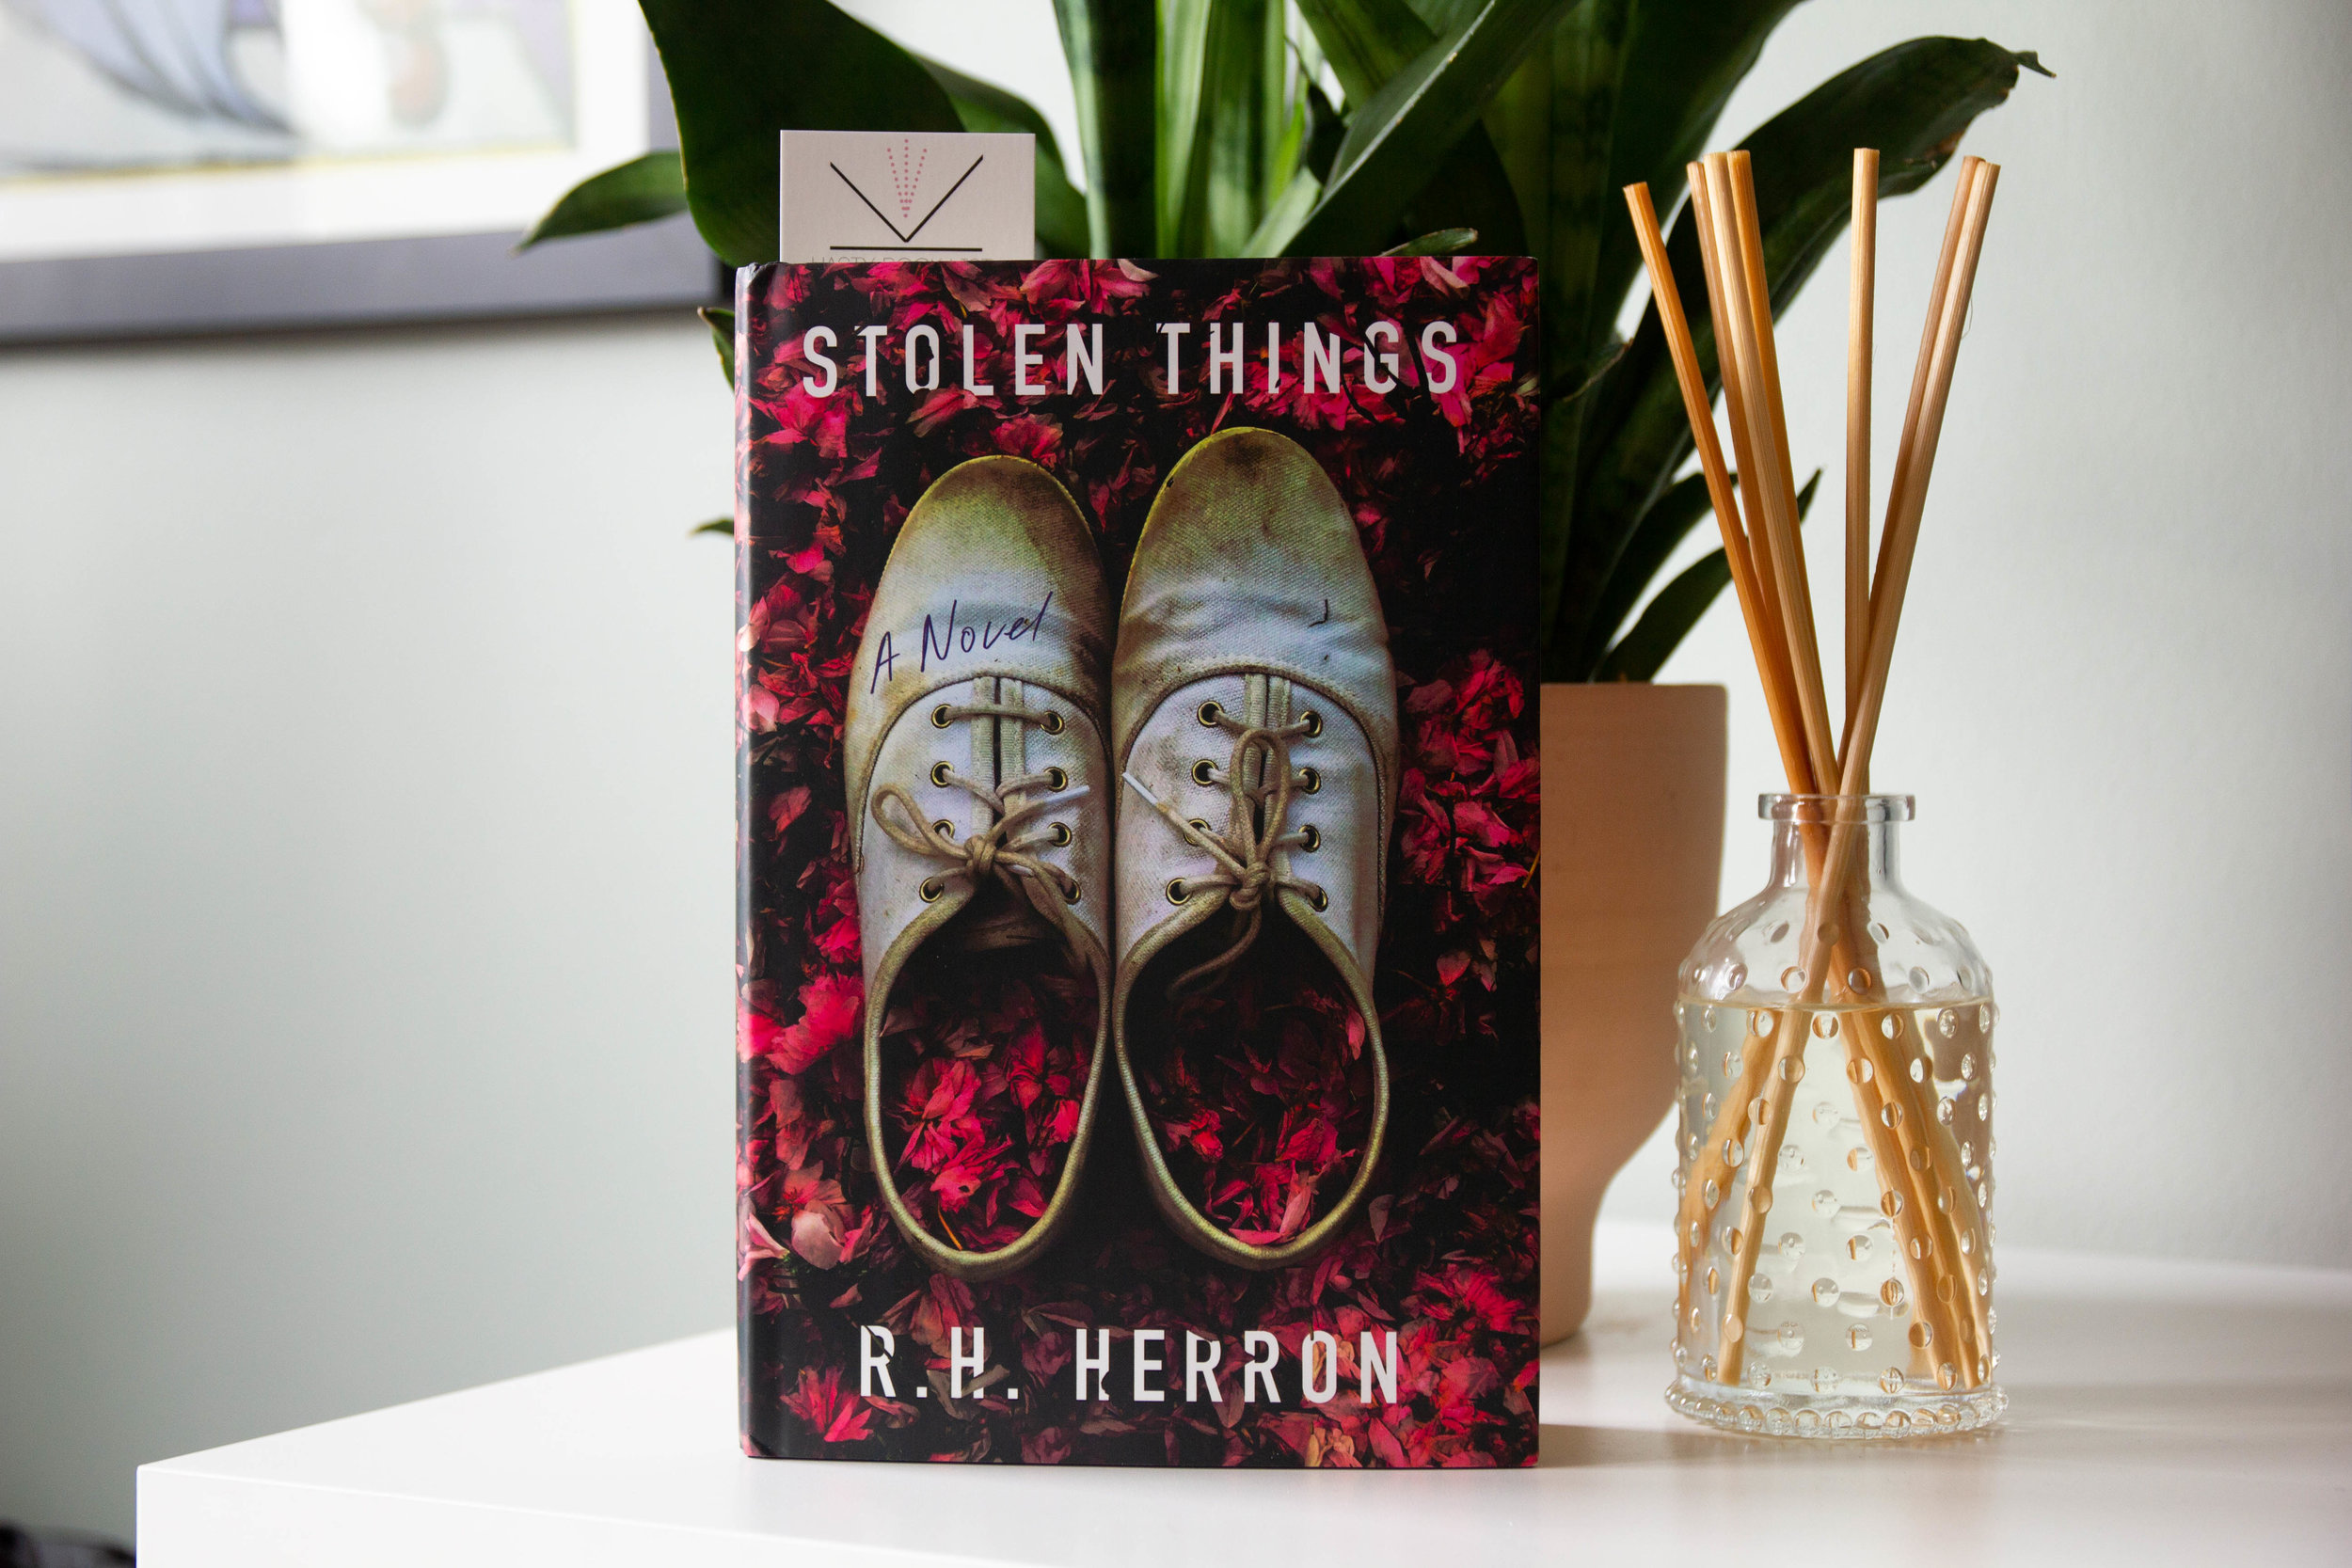 Stolen Things by R.H. Herron - When a 911 dispatcher picks up an emergency call to hear her daughter on the line, her worst nightmare becomes reality.